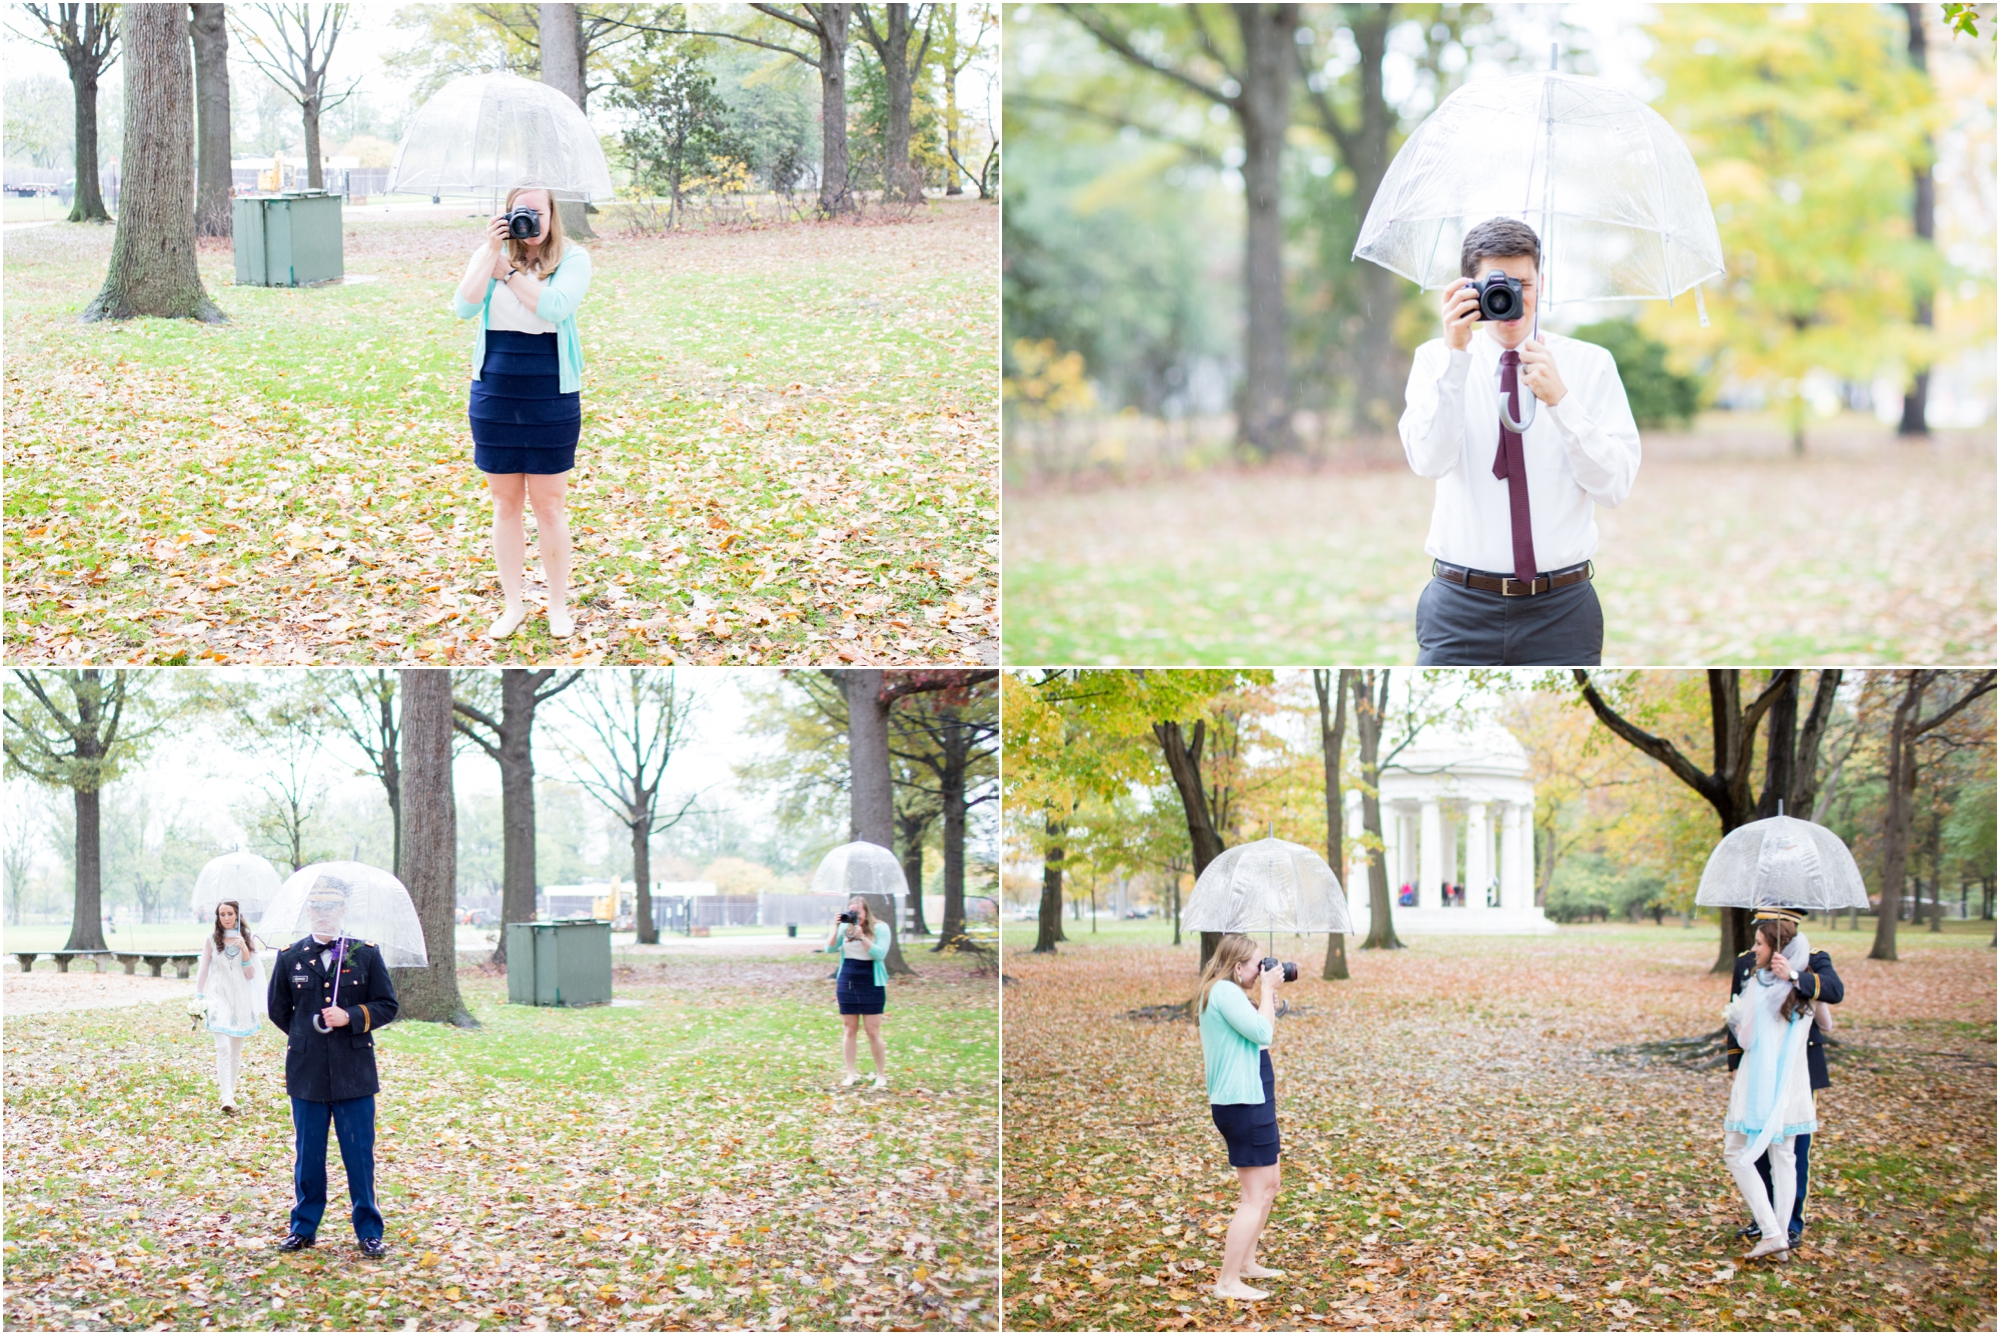 Shooting with one hand while holding an umbrella in the other is harder than it looks!